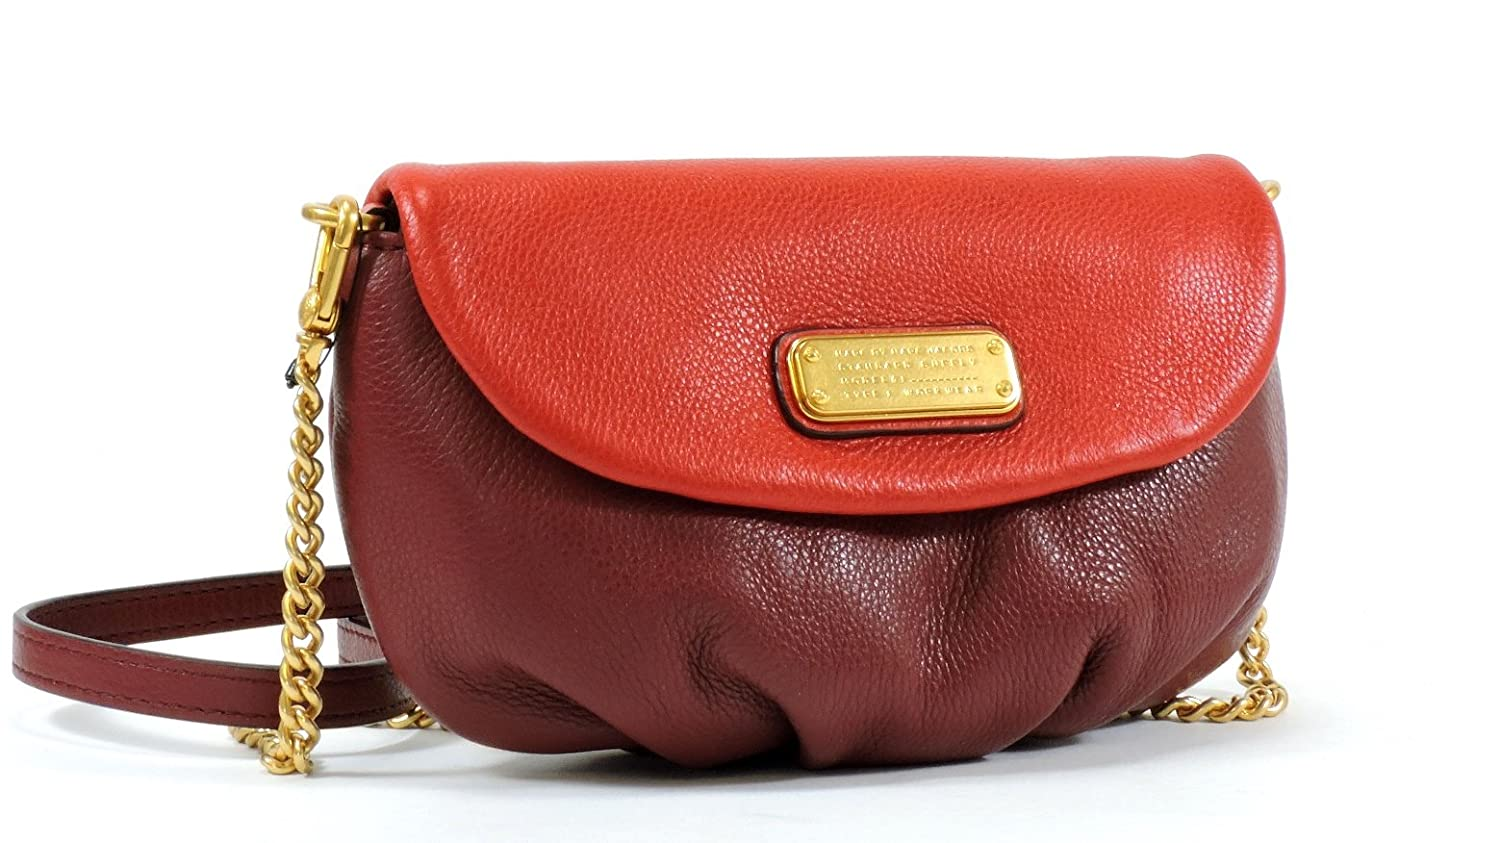 6528395a8495 Amazon.com  Marc by Marc Jacobs New Q Karlie